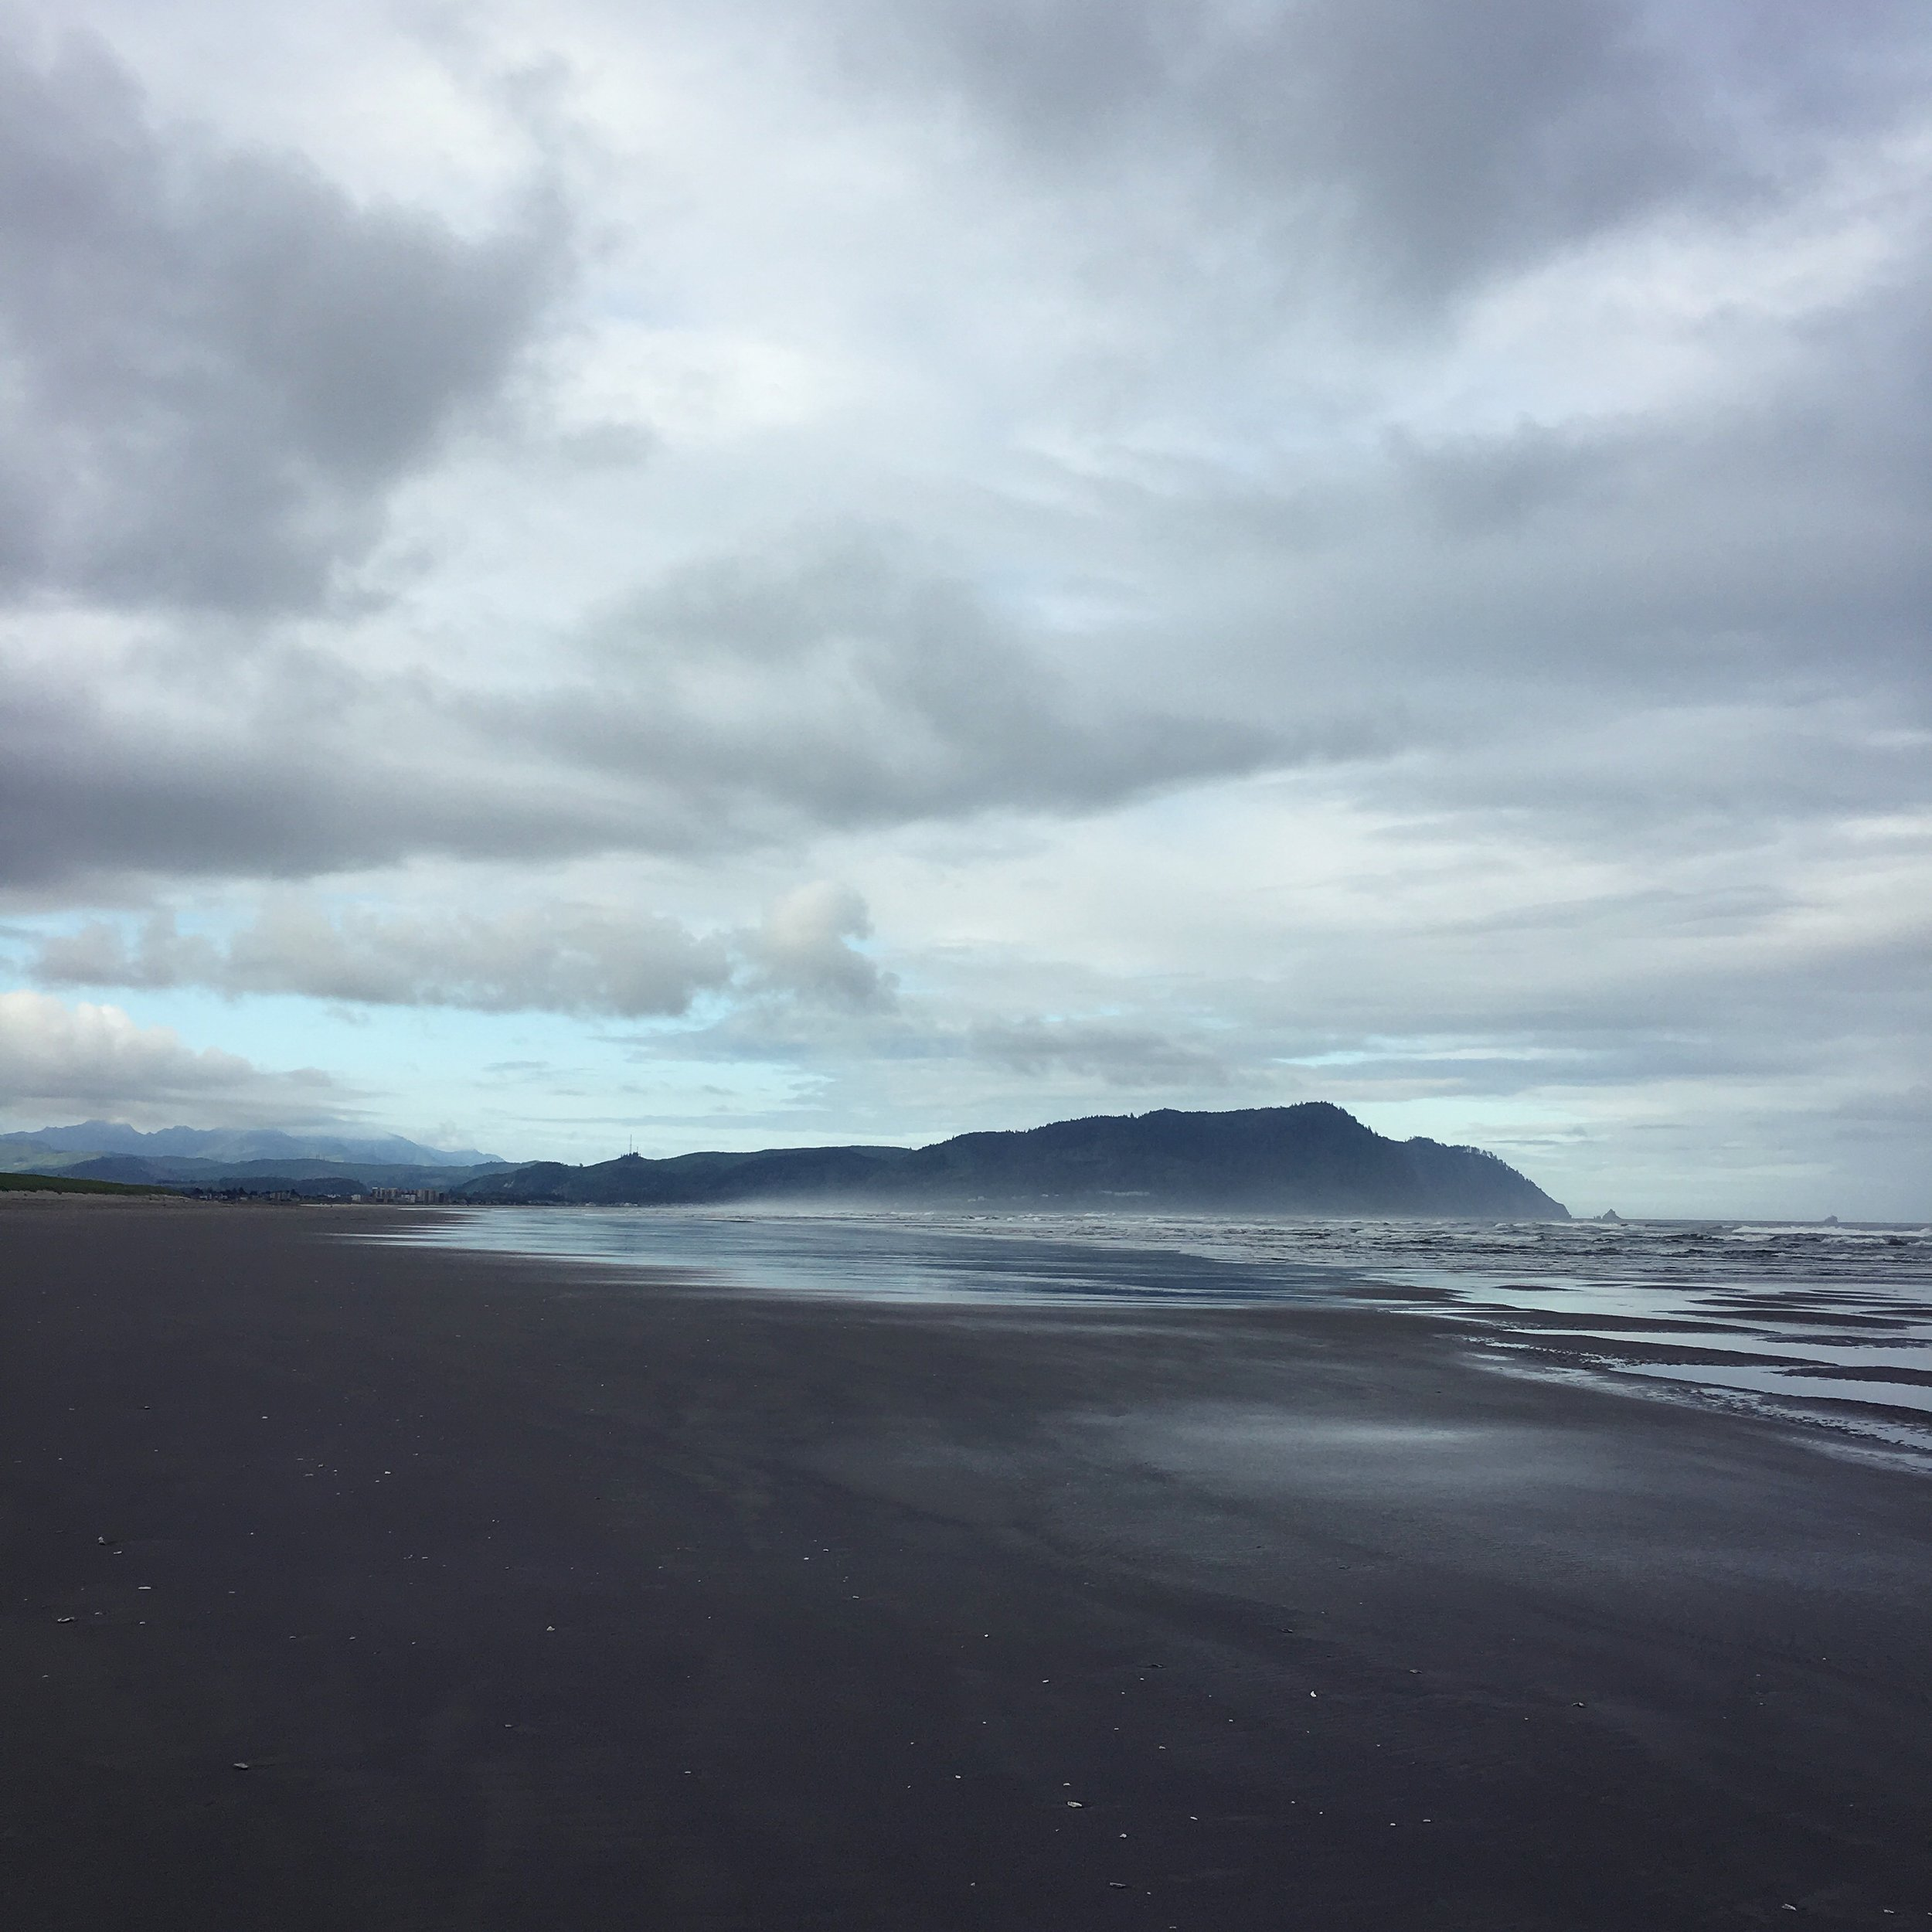 I woke up early the first morning, and got to walk on the moody gray beach. The solitude was so lovely.